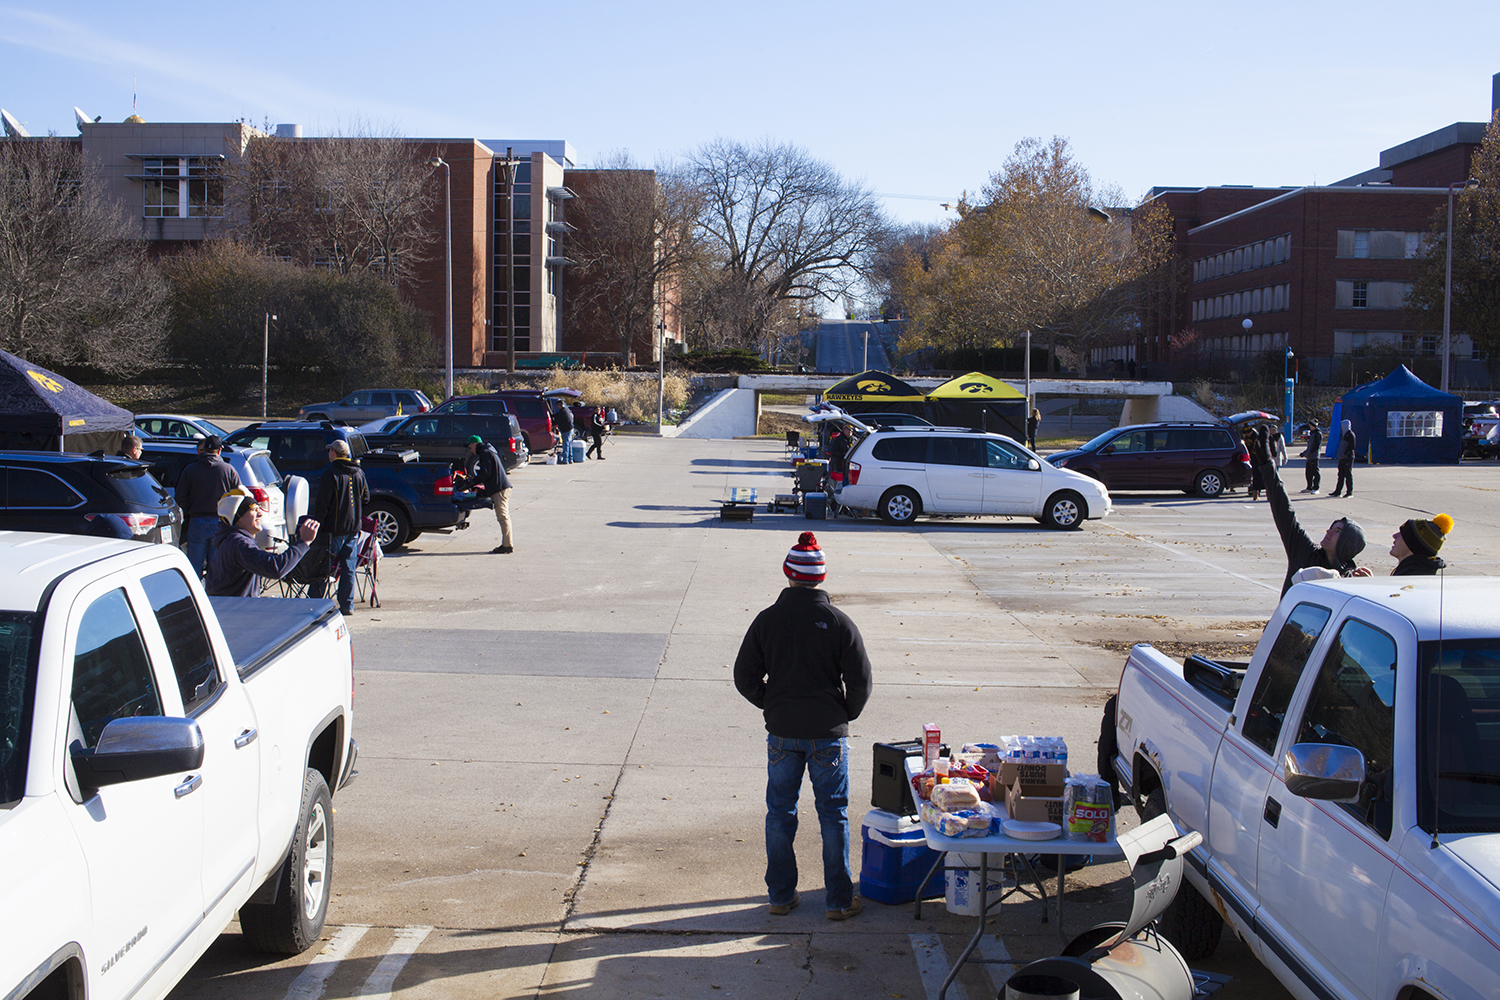 Saturday, November 10, 2018. Fans tailgate in the Adler parking lot for the Iowa vs Northwestern game.